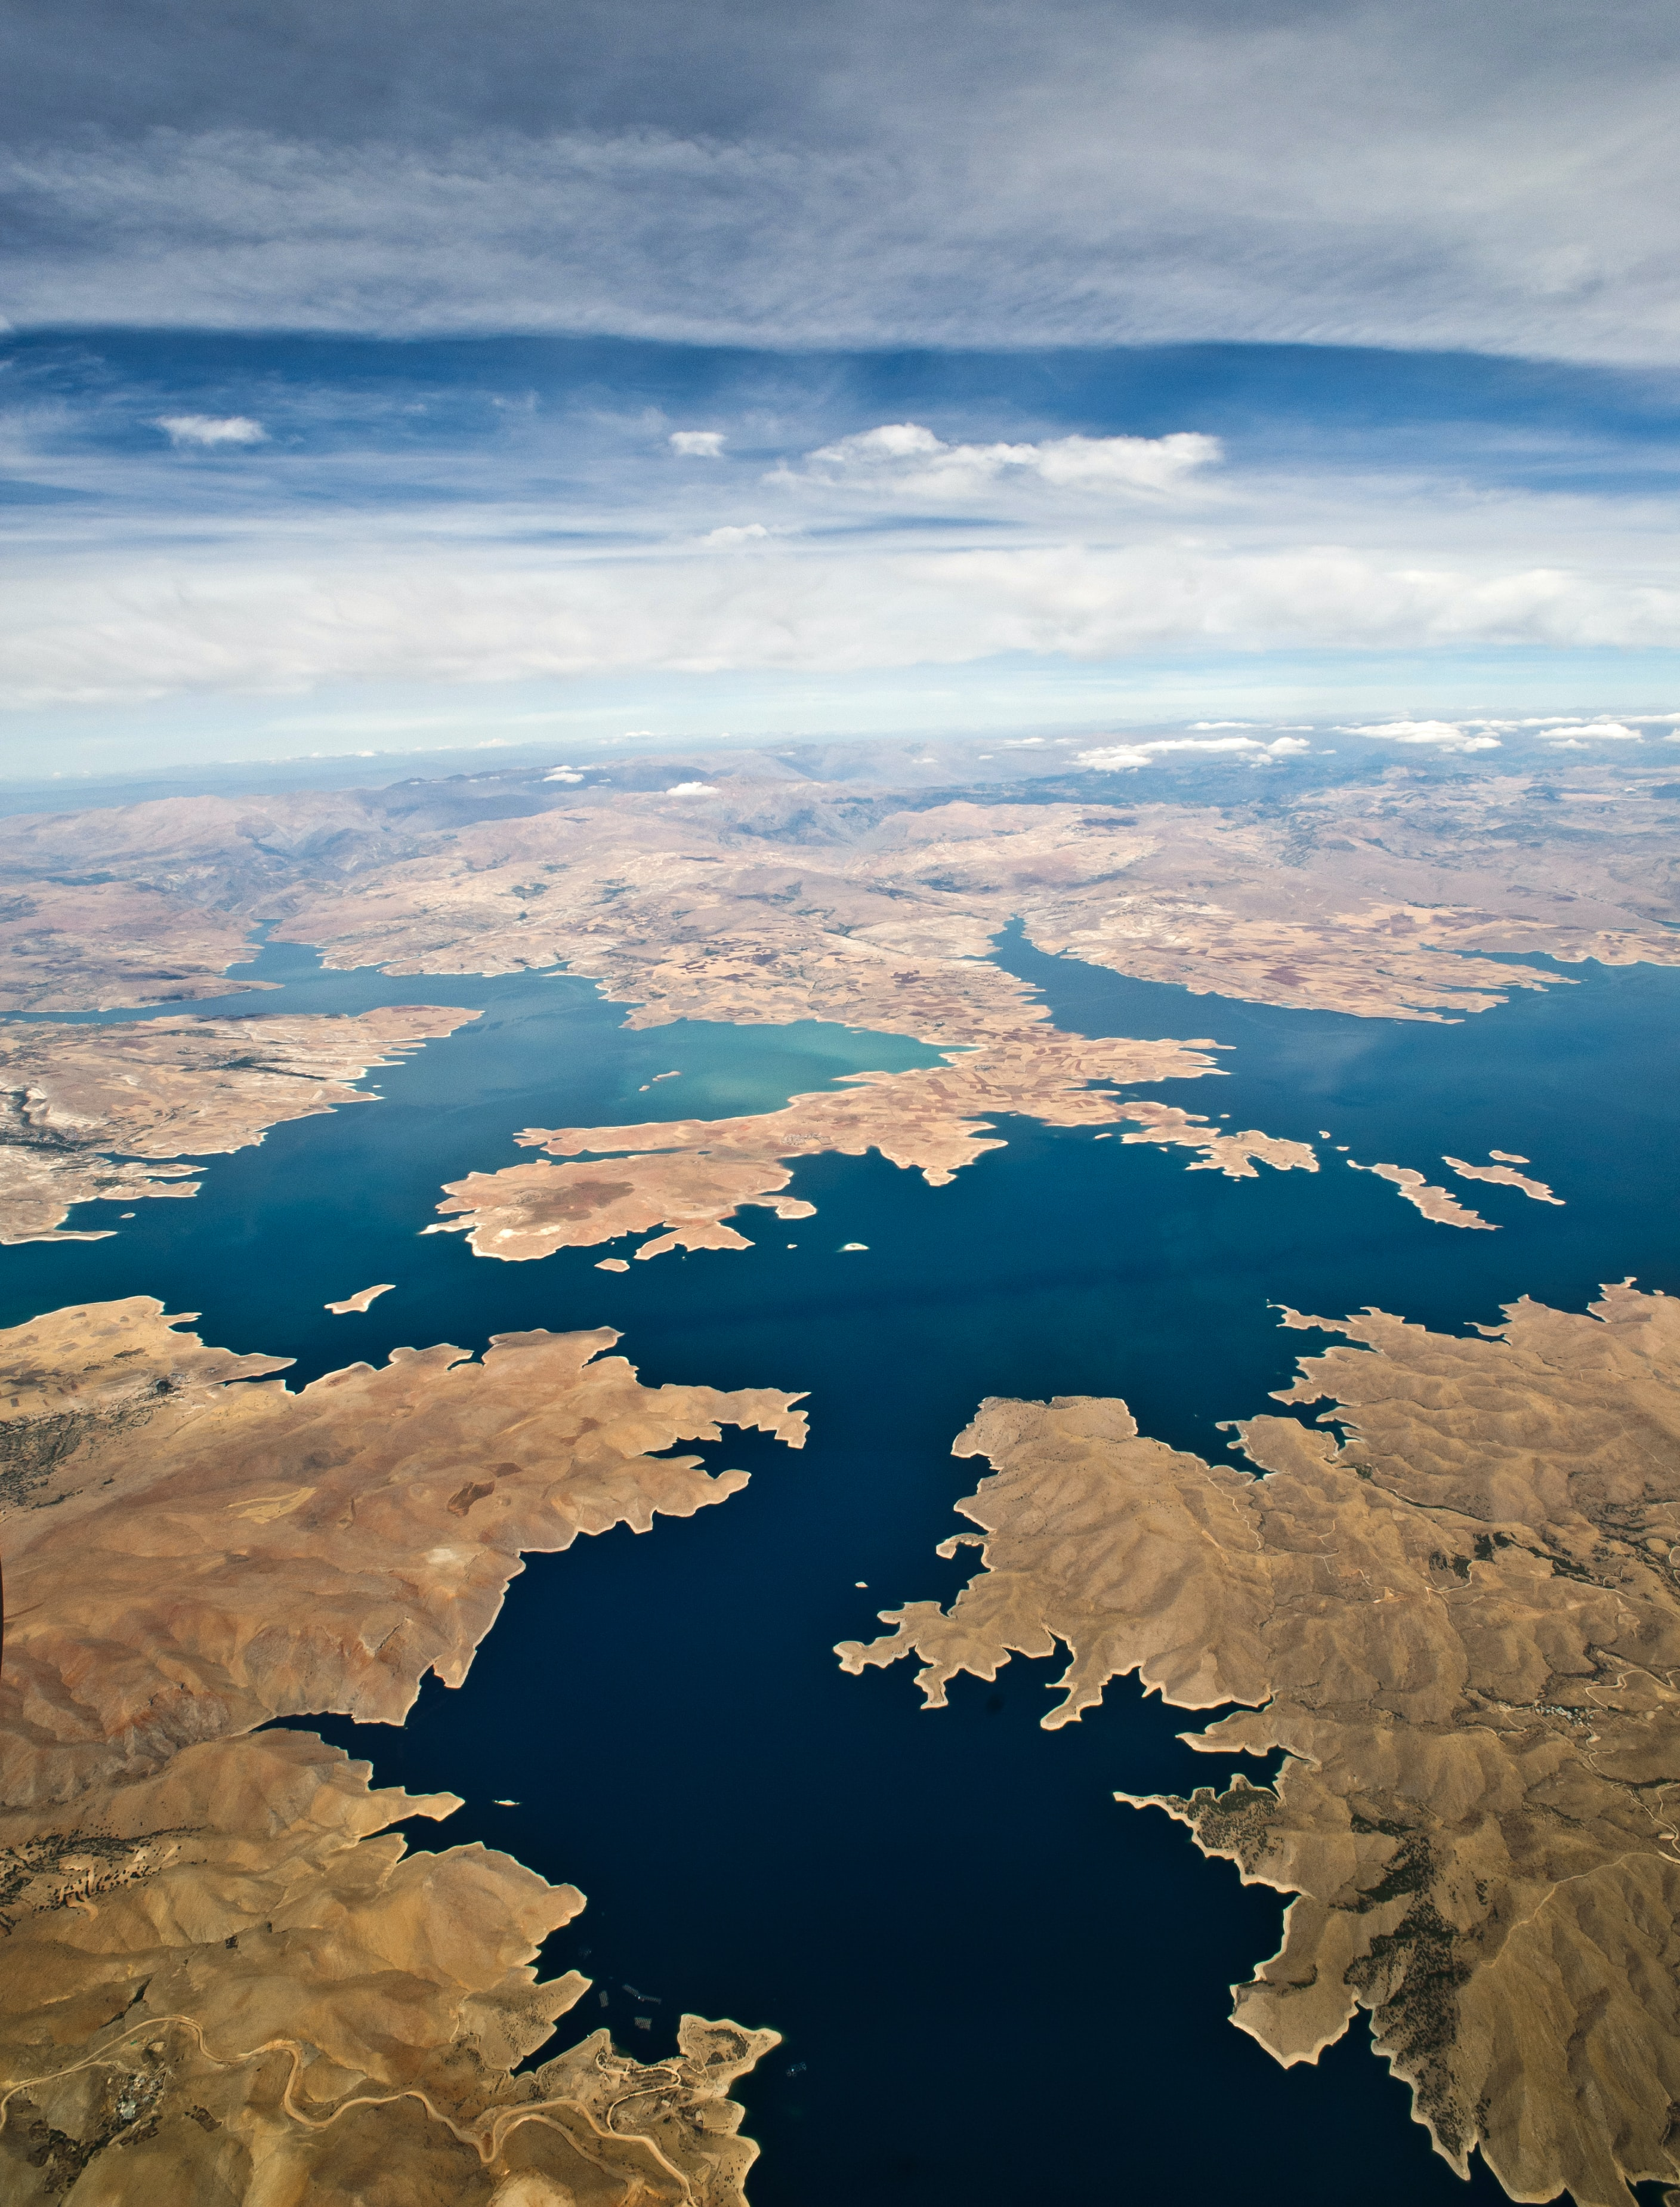 aerial shot of body of water surrounded by land